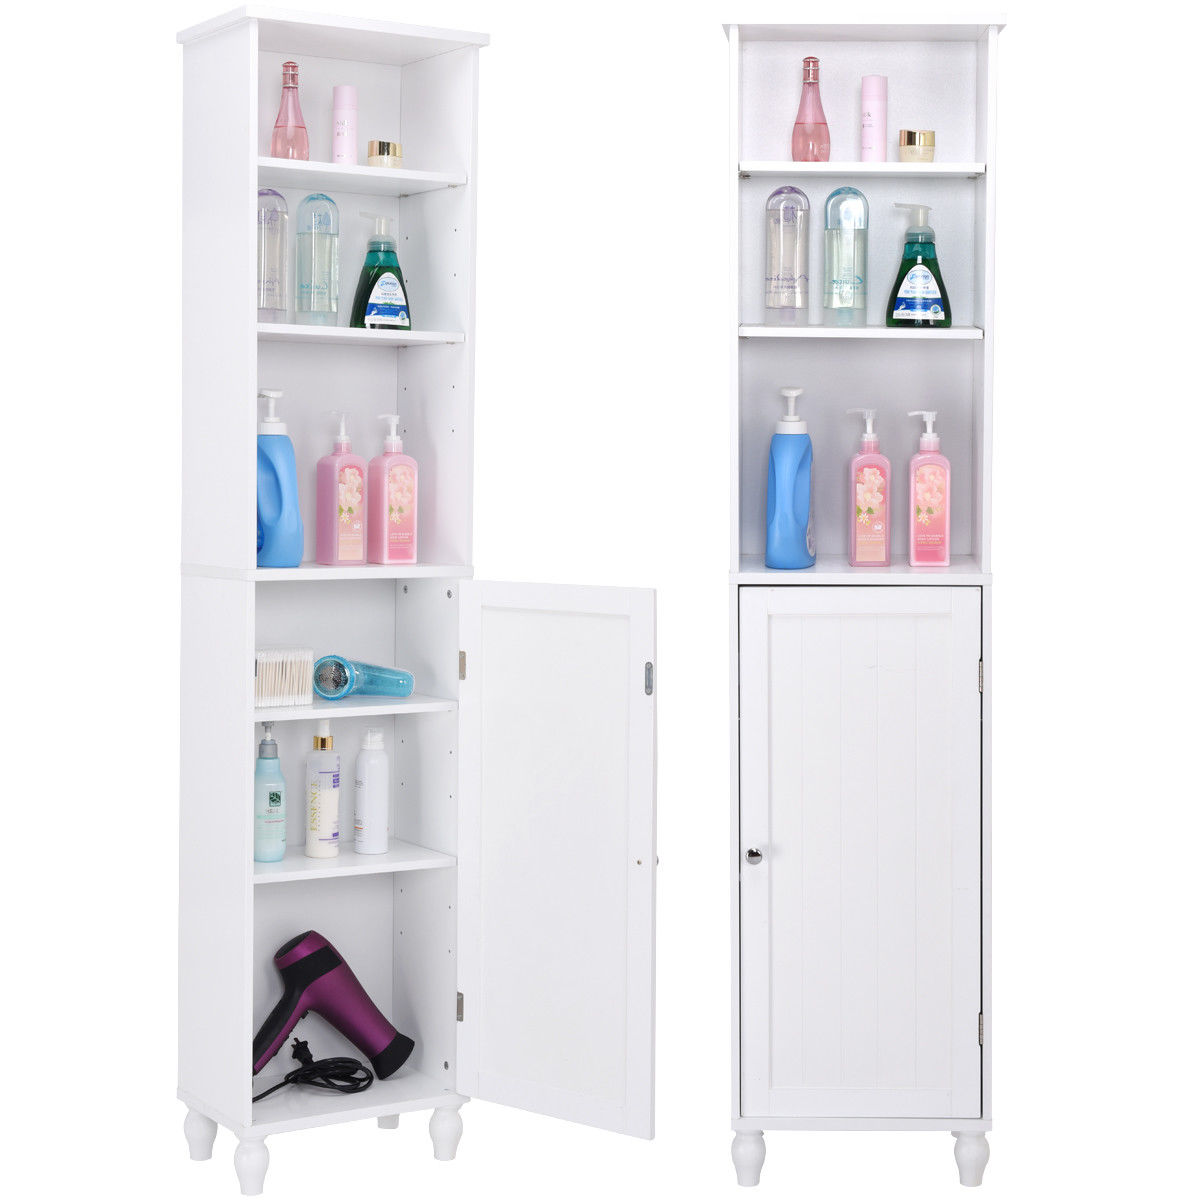 Giantex Bathroom Storage Cabinet Modern White Wood Tower Bath Cabinet Storage Shelving Display Cabinet HW57022 willow wood bamboo rattan straw bedside cabinet lockers storage cabinets debris cabinet